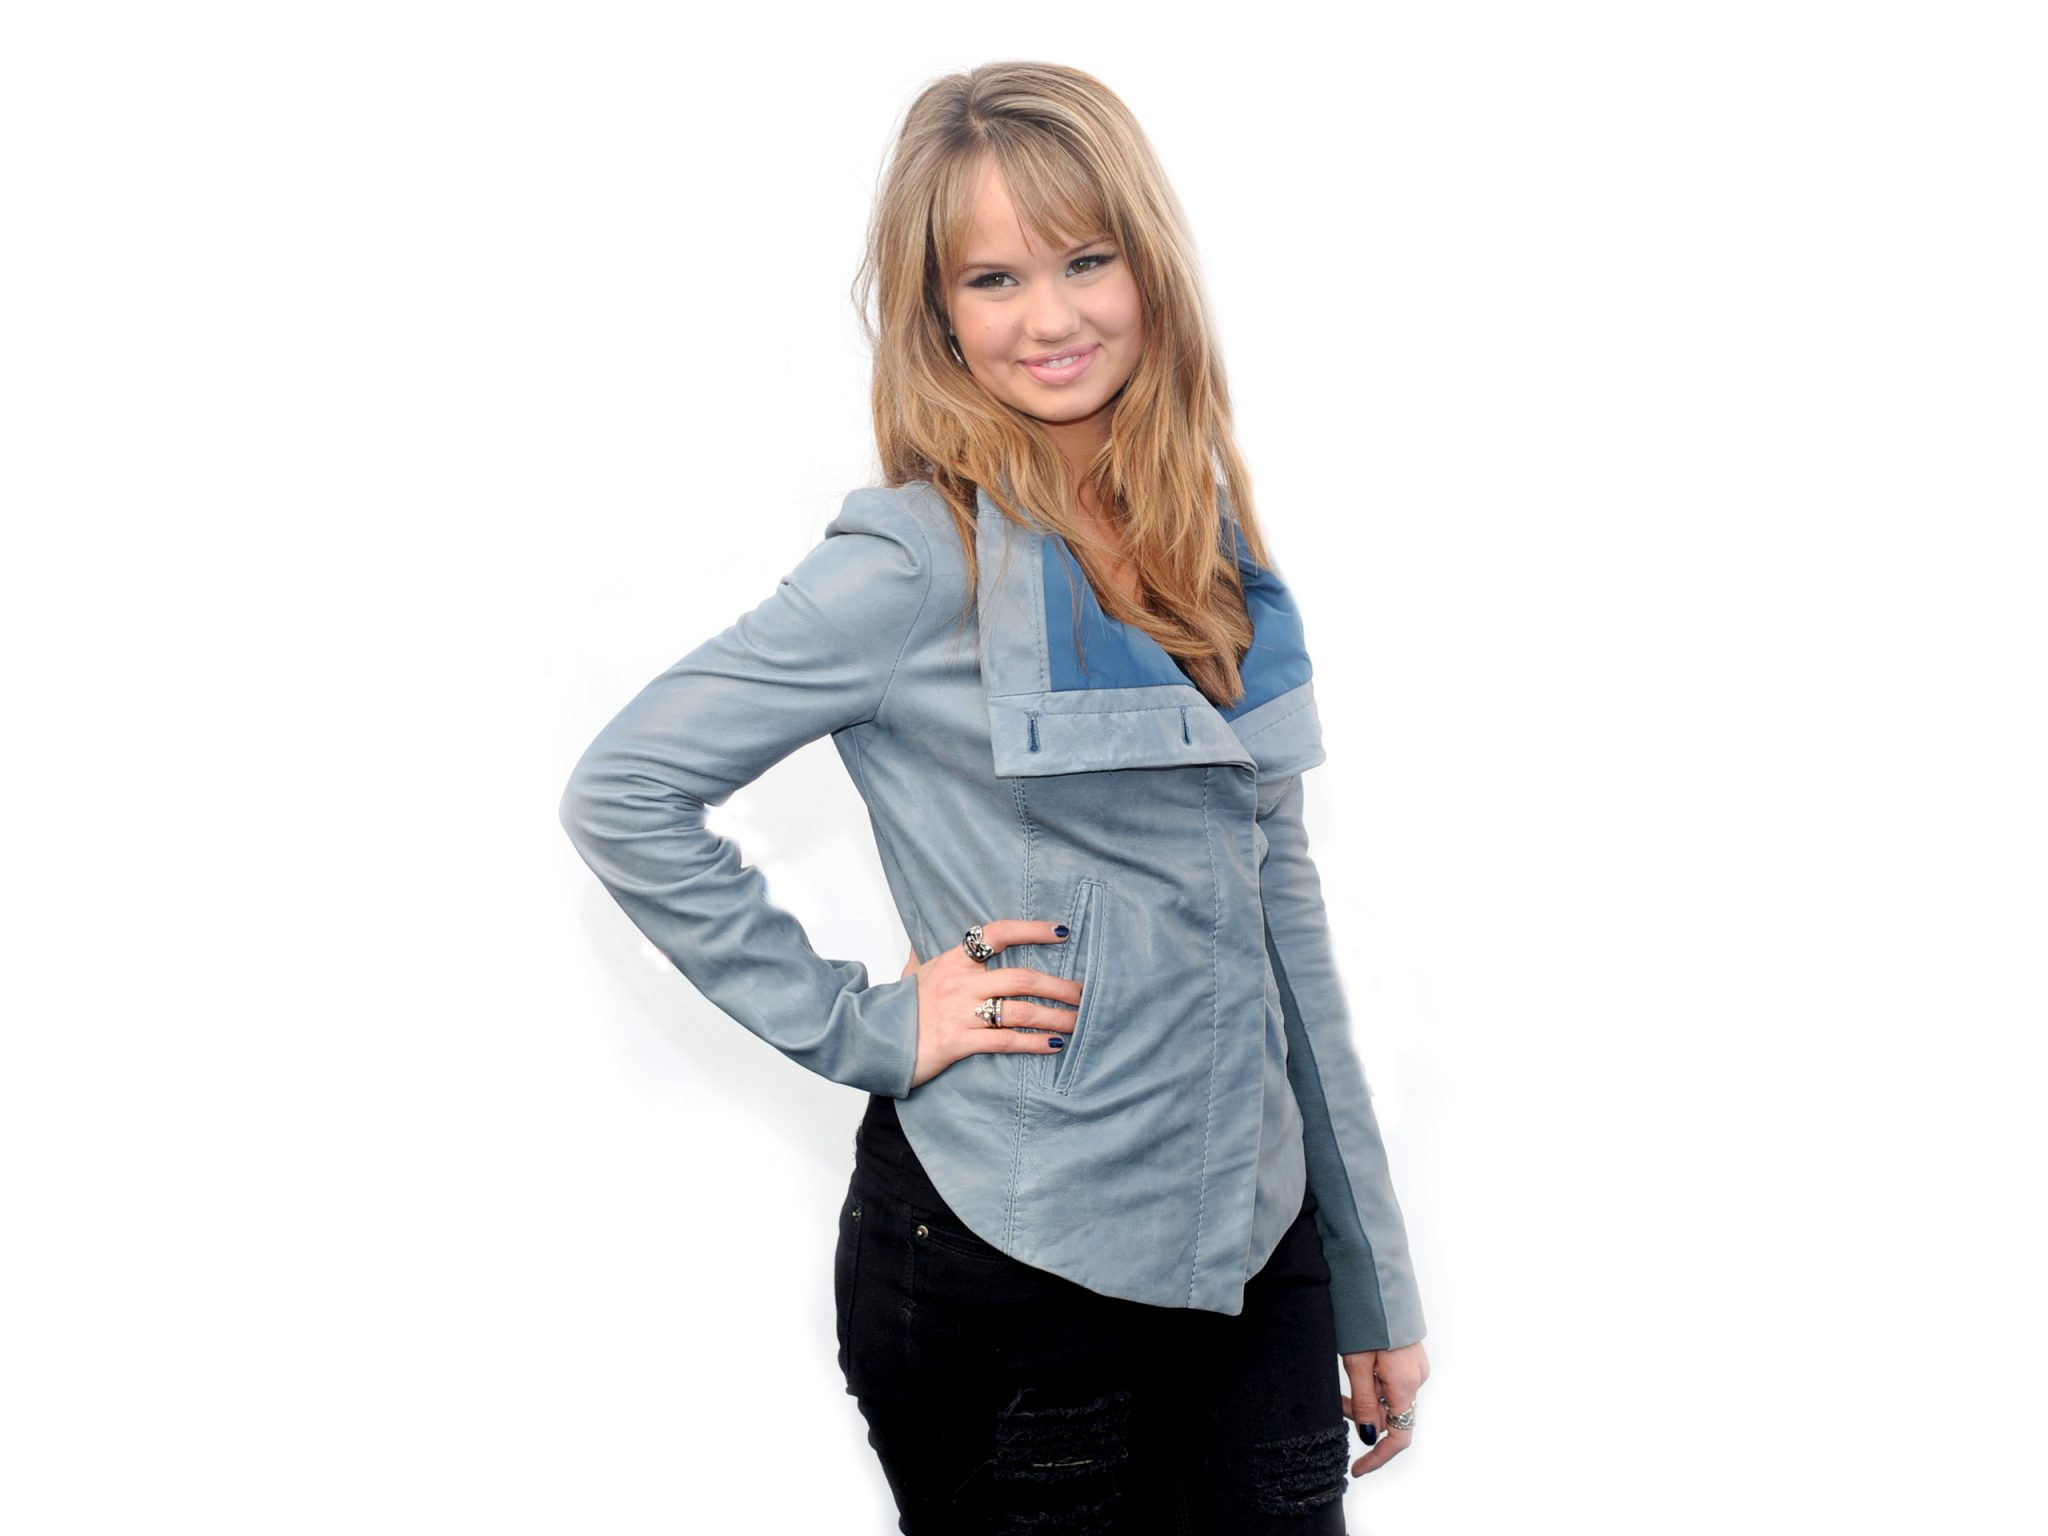 Debby-Ryan-Wallpapers--Background-Full-HD-09